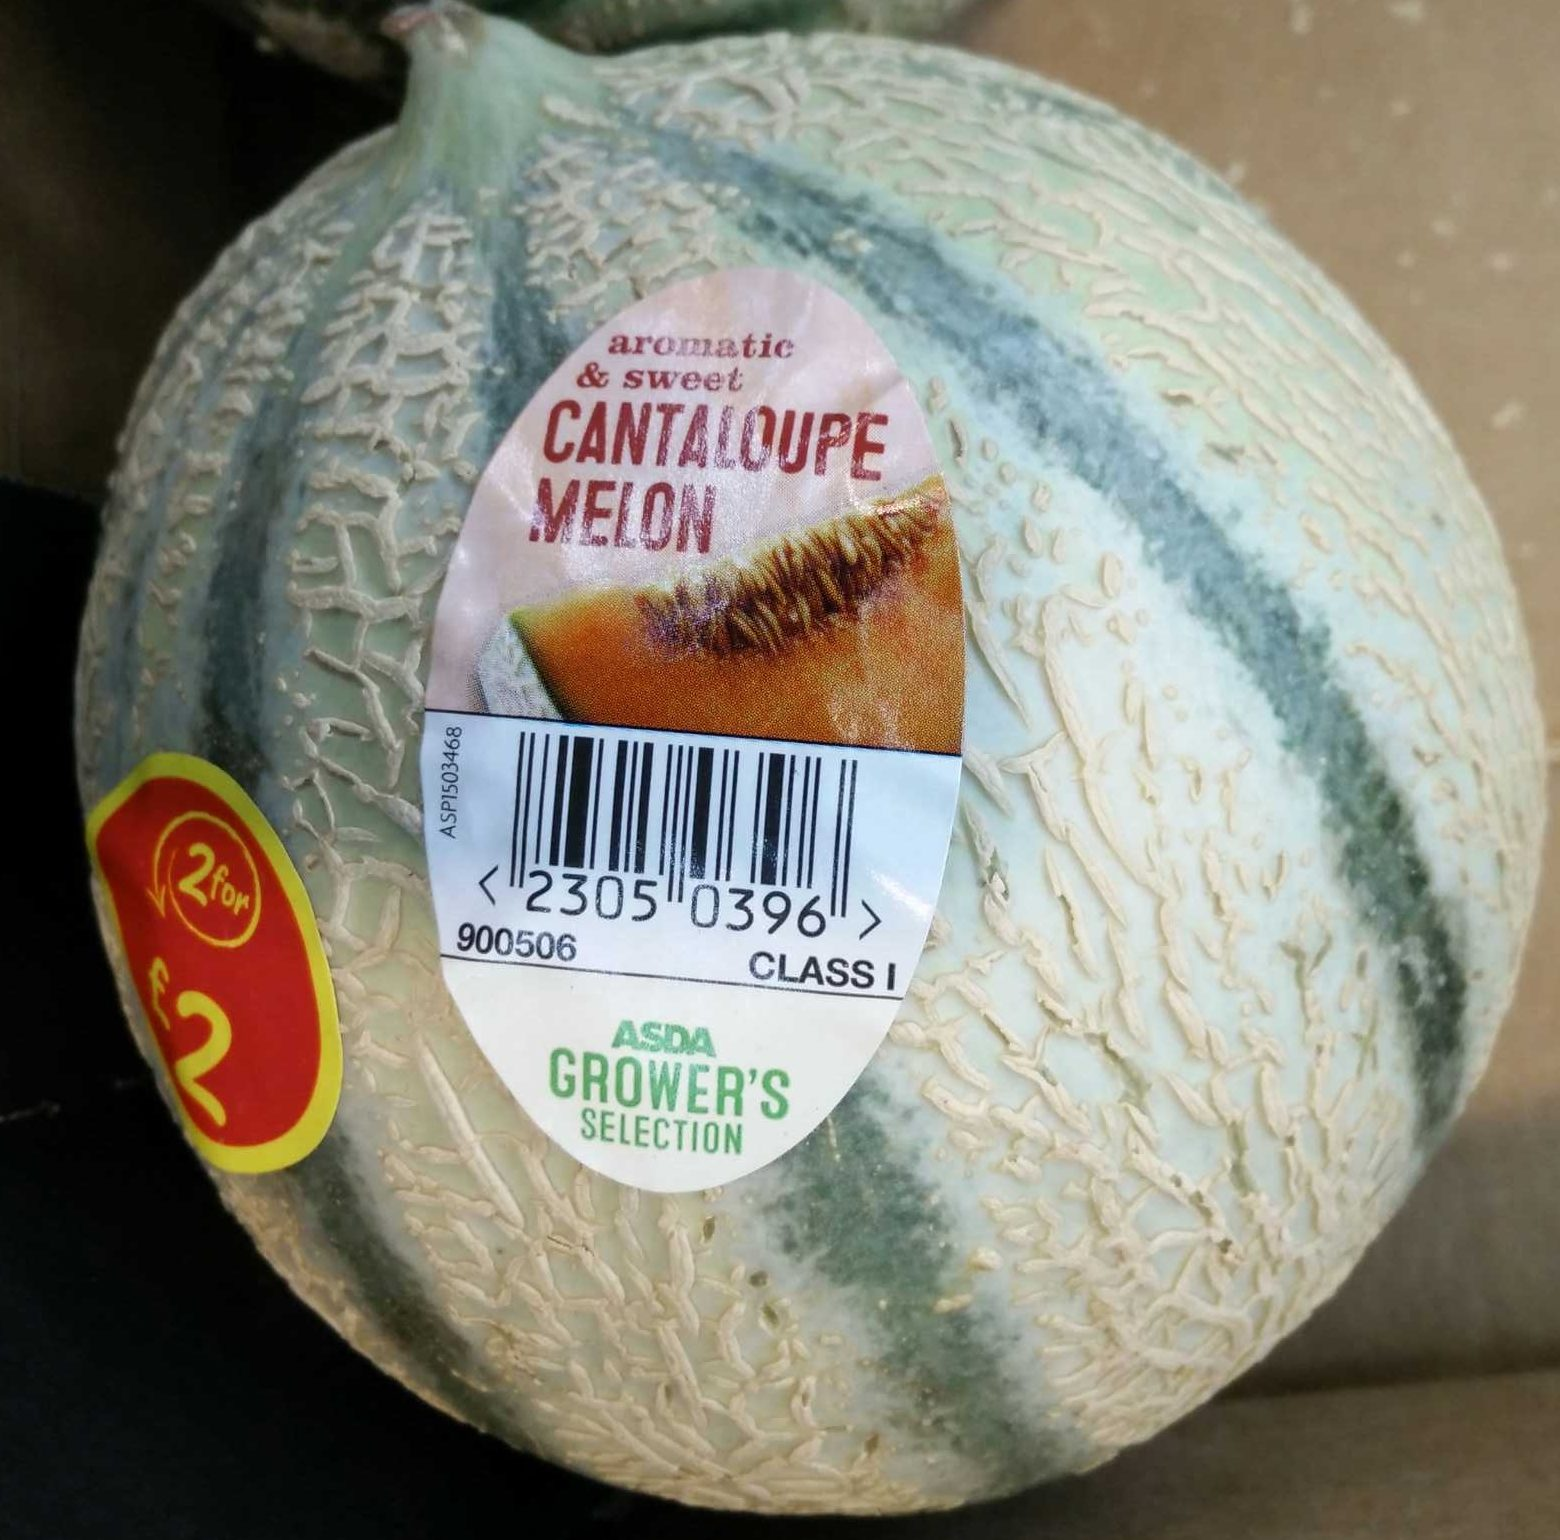 Melon Cantaloup Asda 1 Fruit The humble cantaloupe may not get as much respect as other fruits, but it should. https creativecommons org licenses by sa 3 0